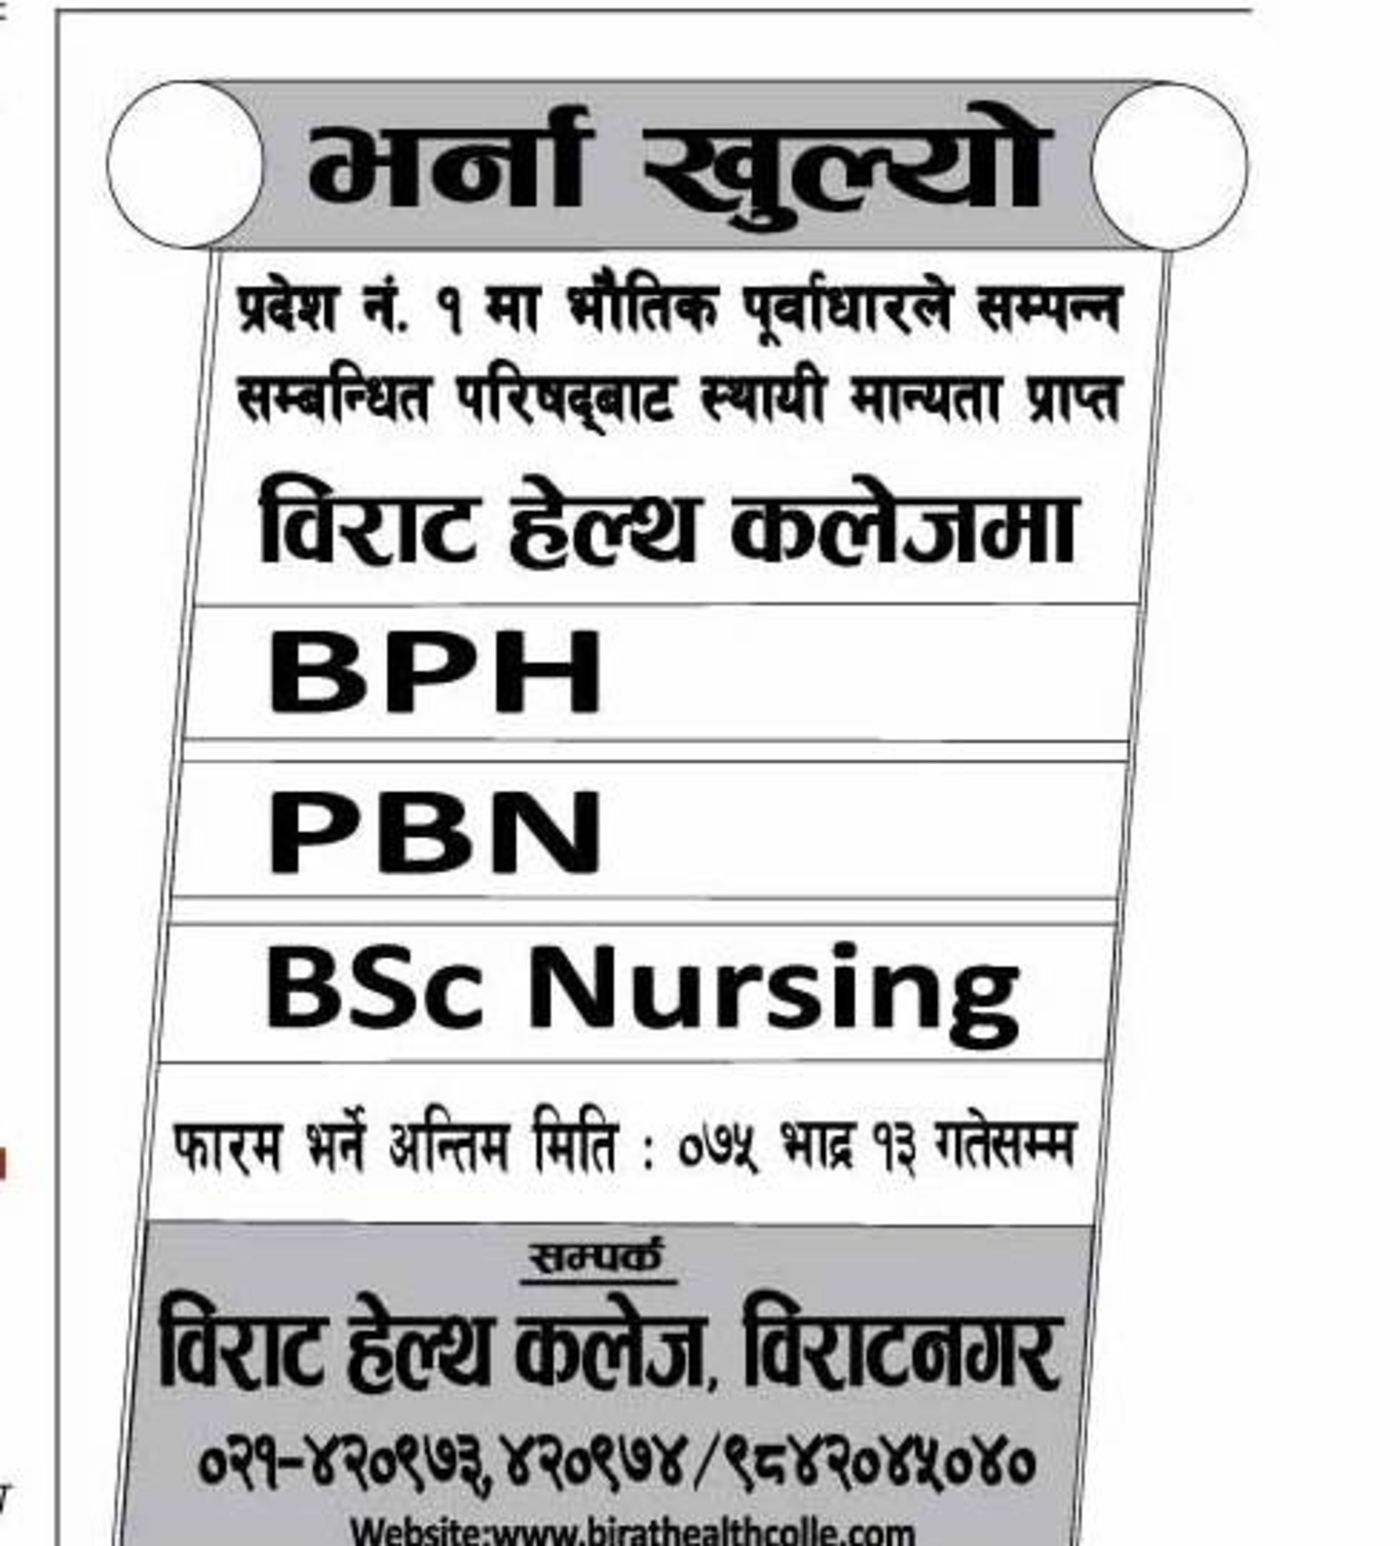 Education and Training Nepal - Admission Open - BPH, PBN and BSc